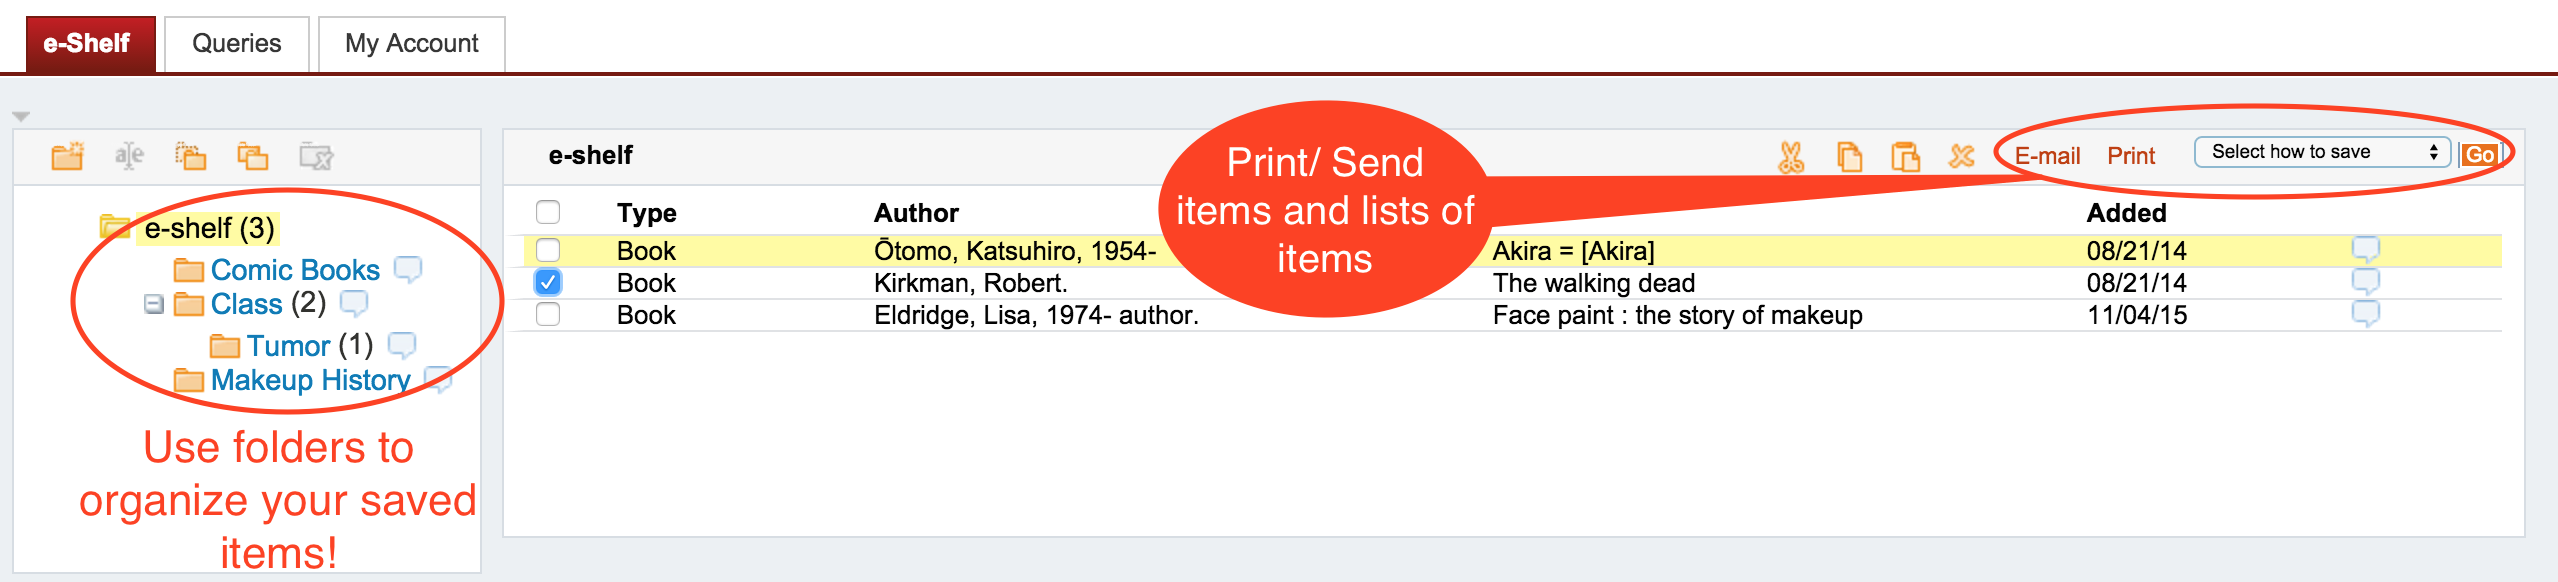 Once Items Are In Your Eshelf You Cananize Them In To Folders, Print  Them Or Send Them To Your Email, Endnote Basic, And More